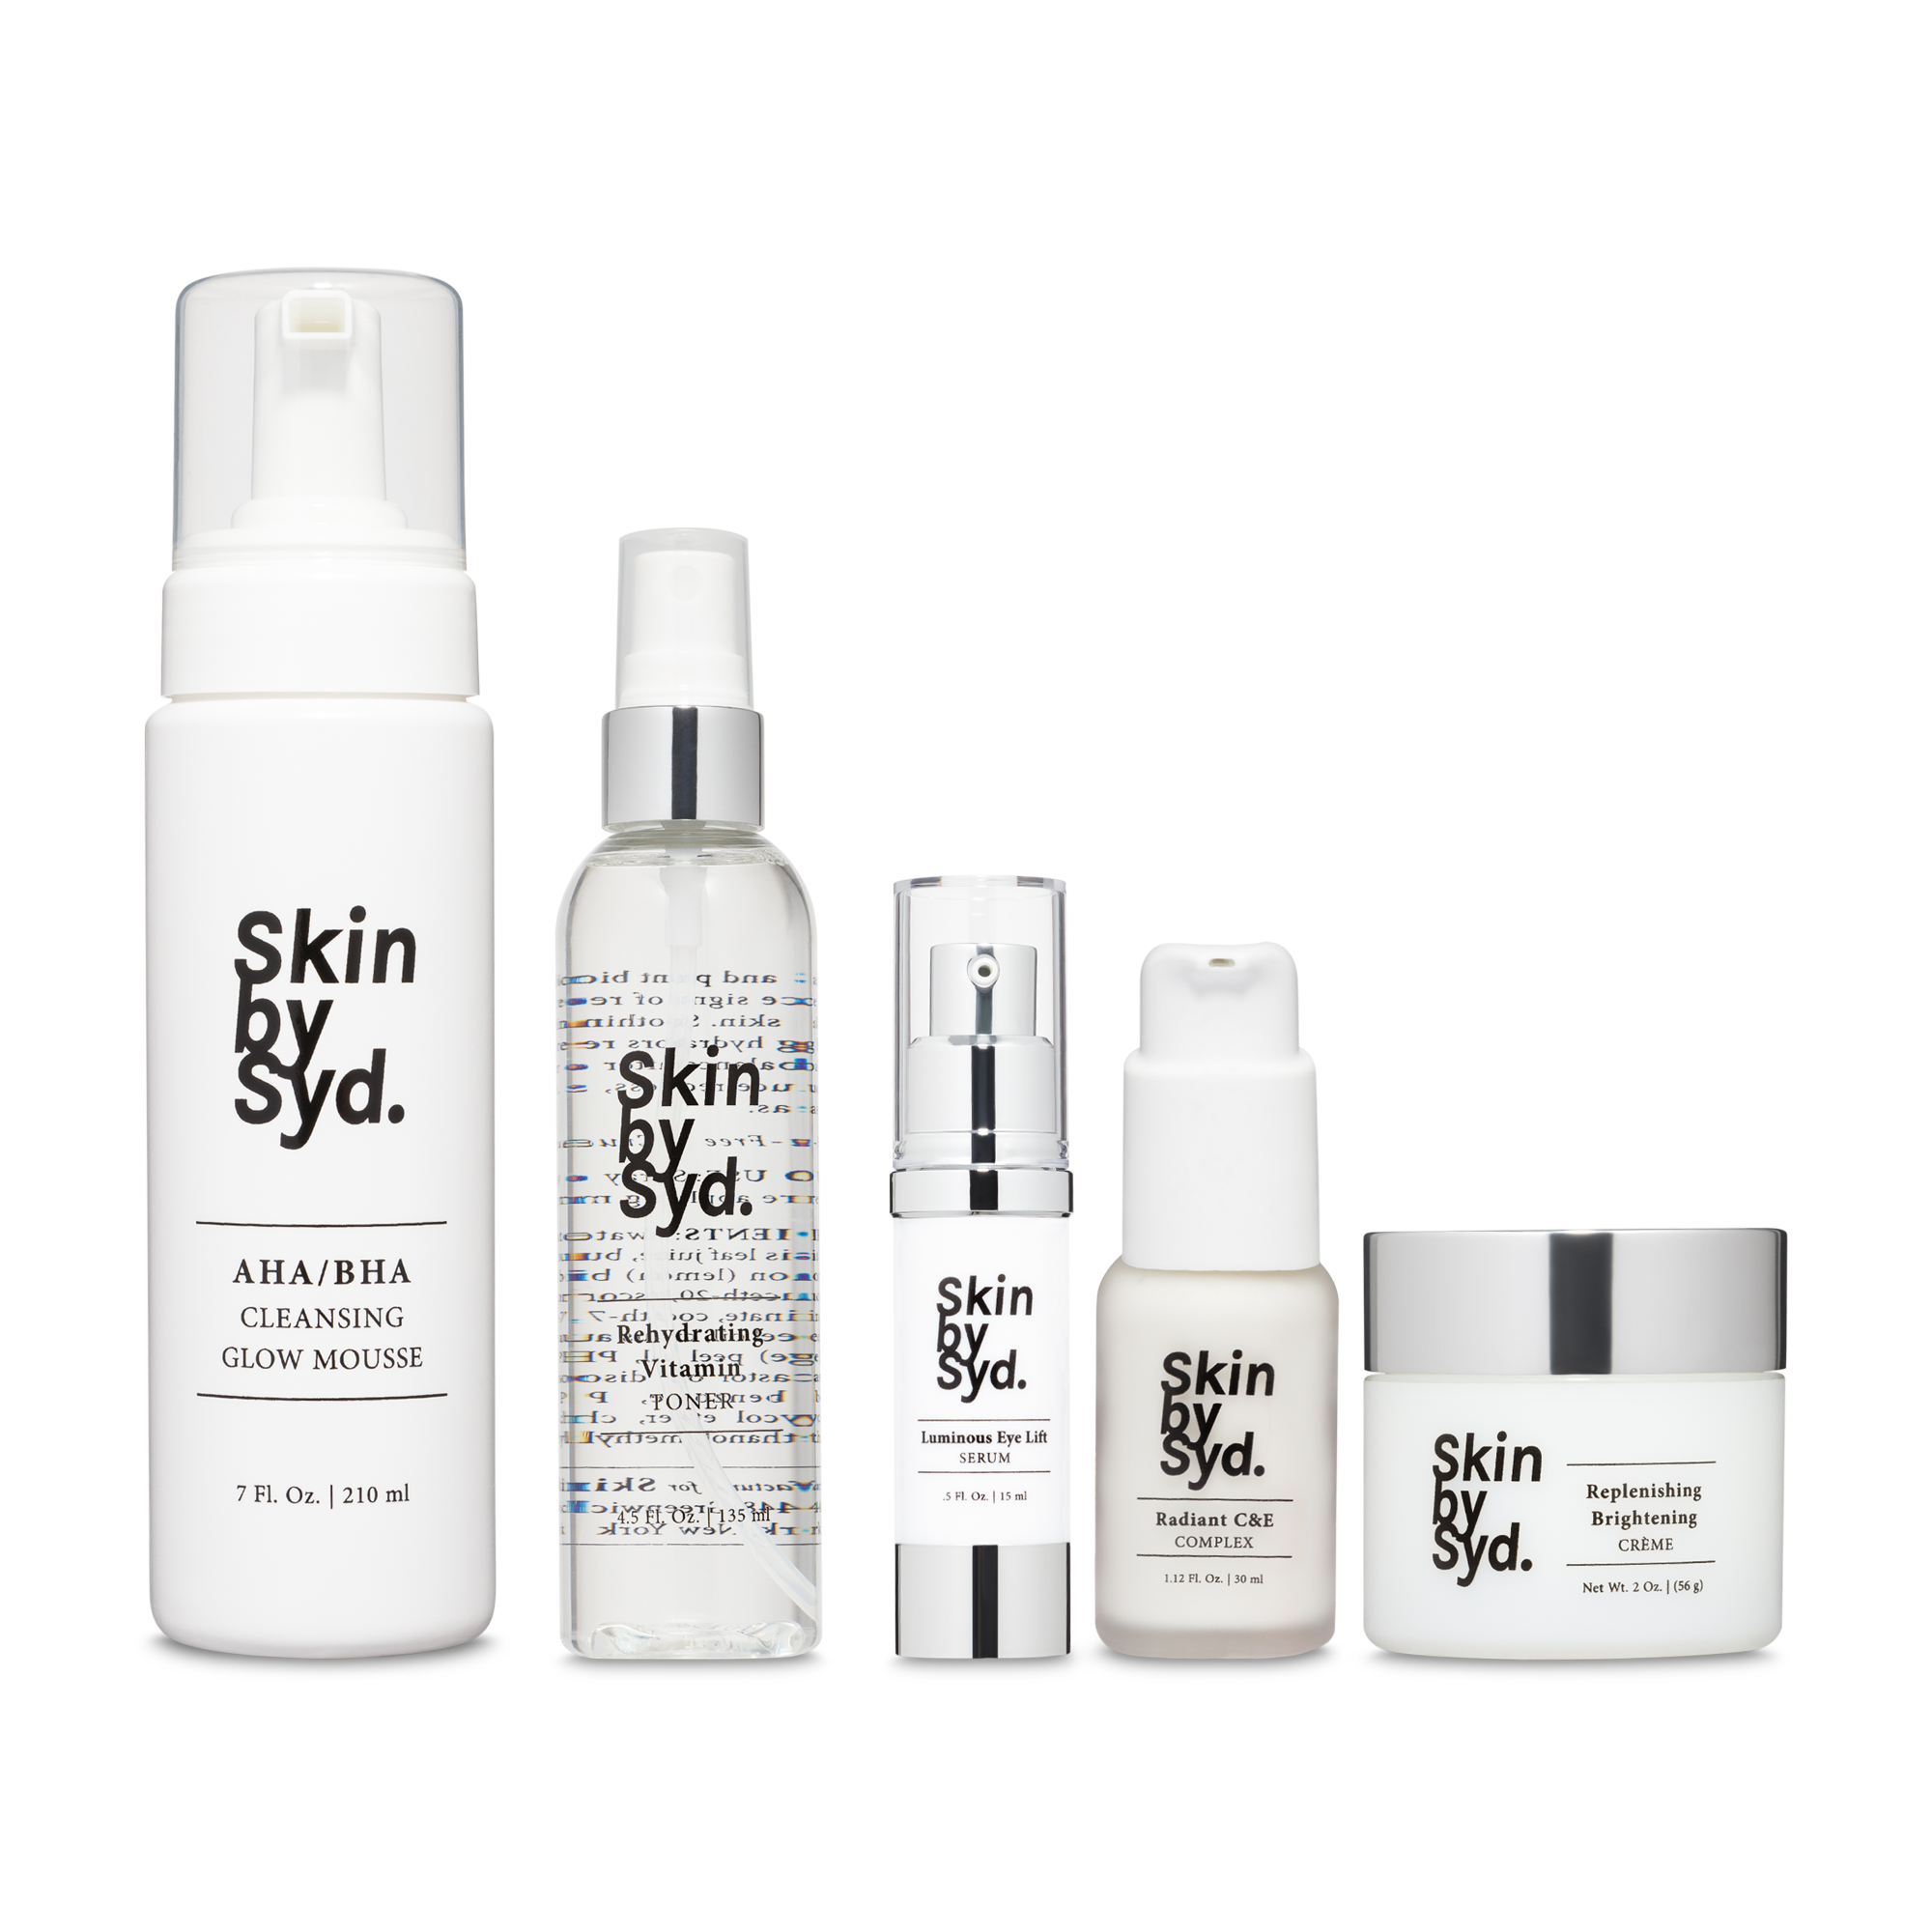 skincare product image